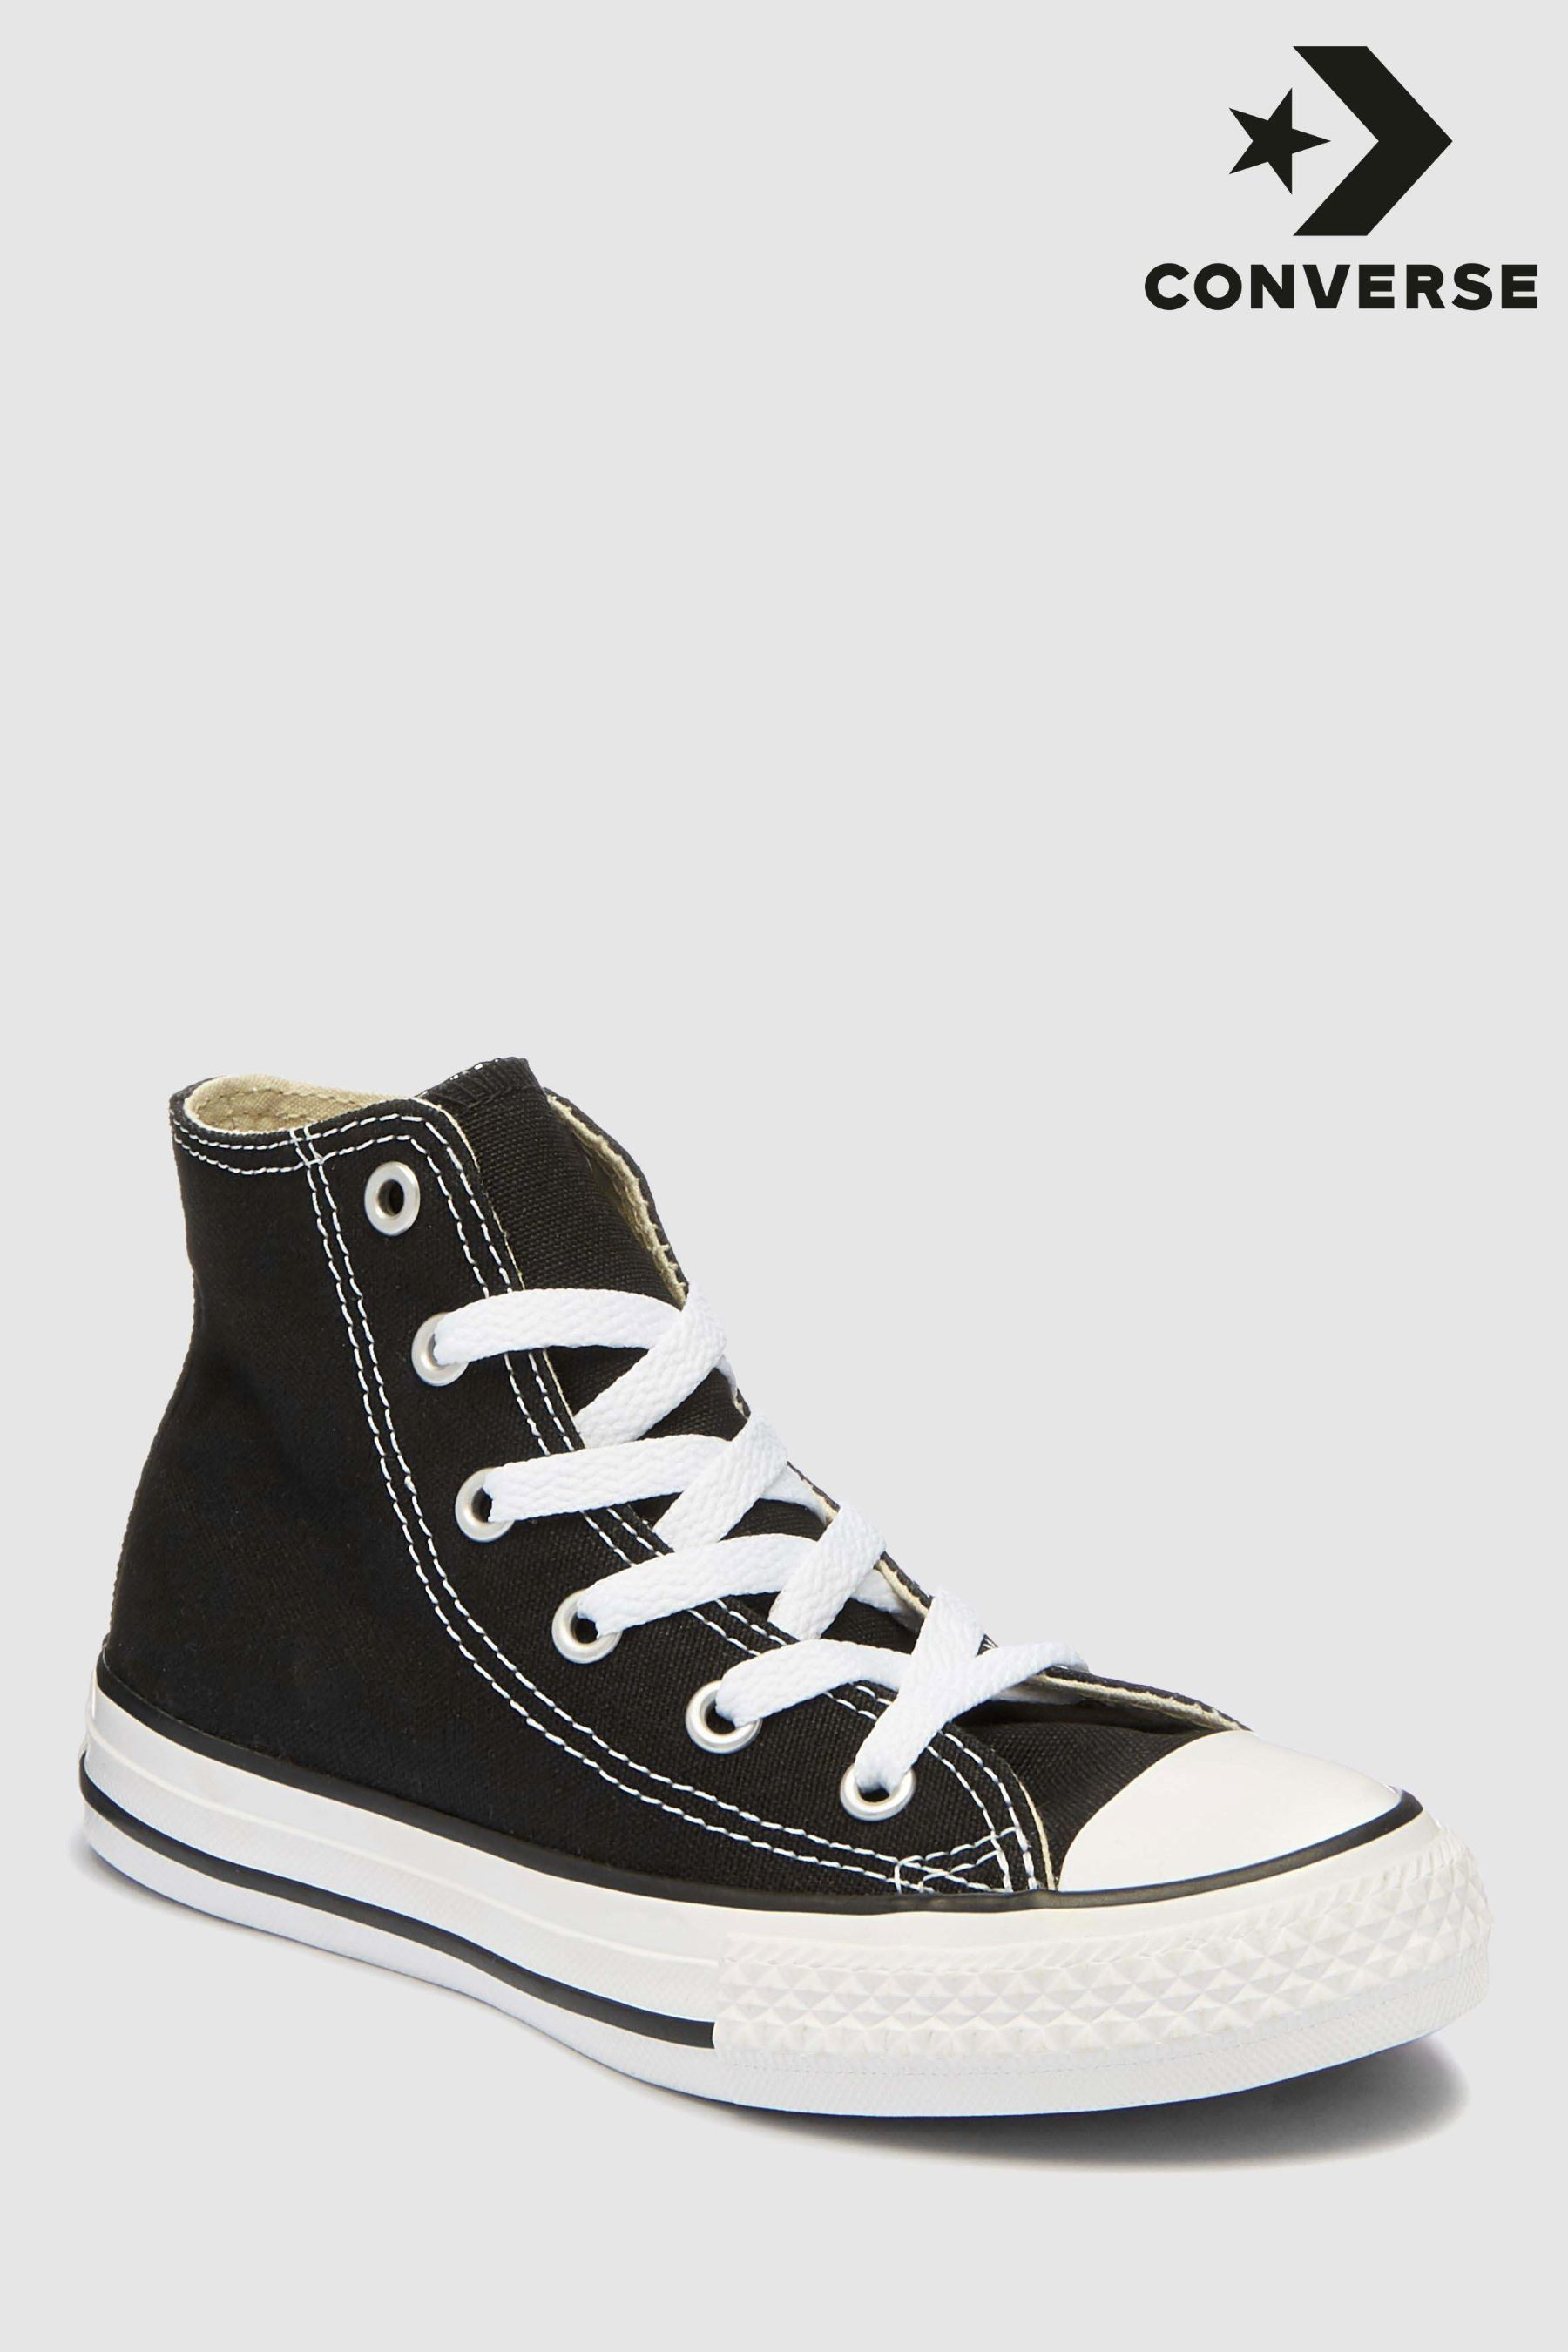 converse black all star hi trainers junior